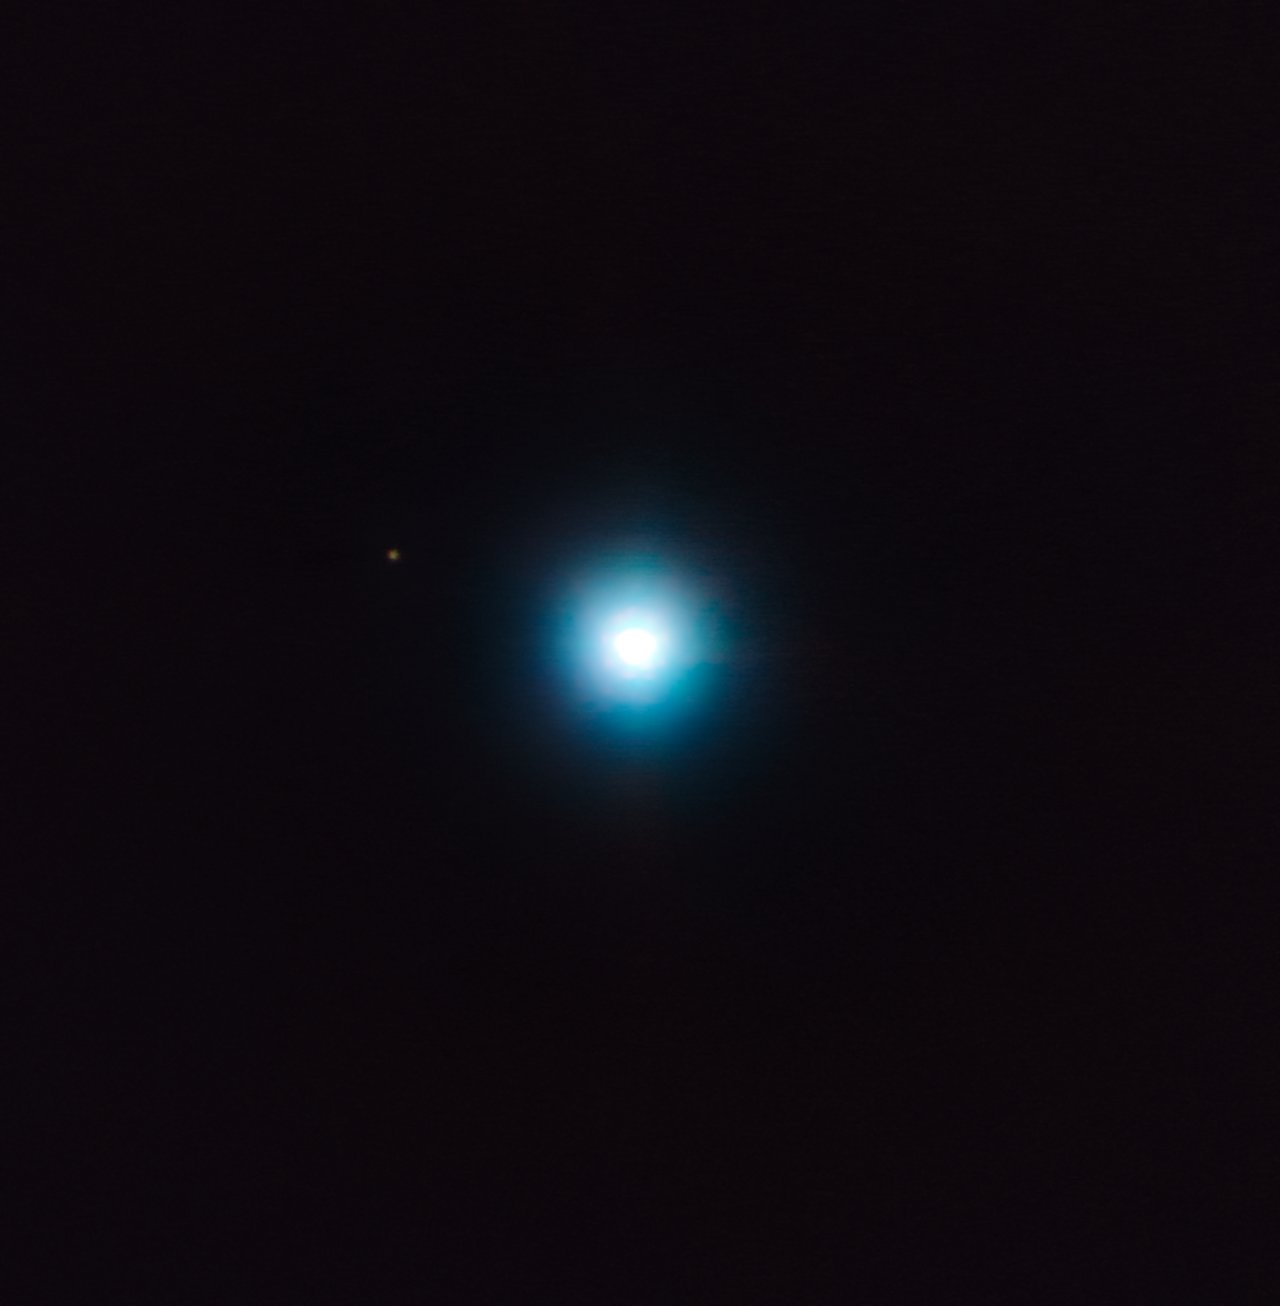 Direct Image of Likely Exoplanet by Very Large Telescope